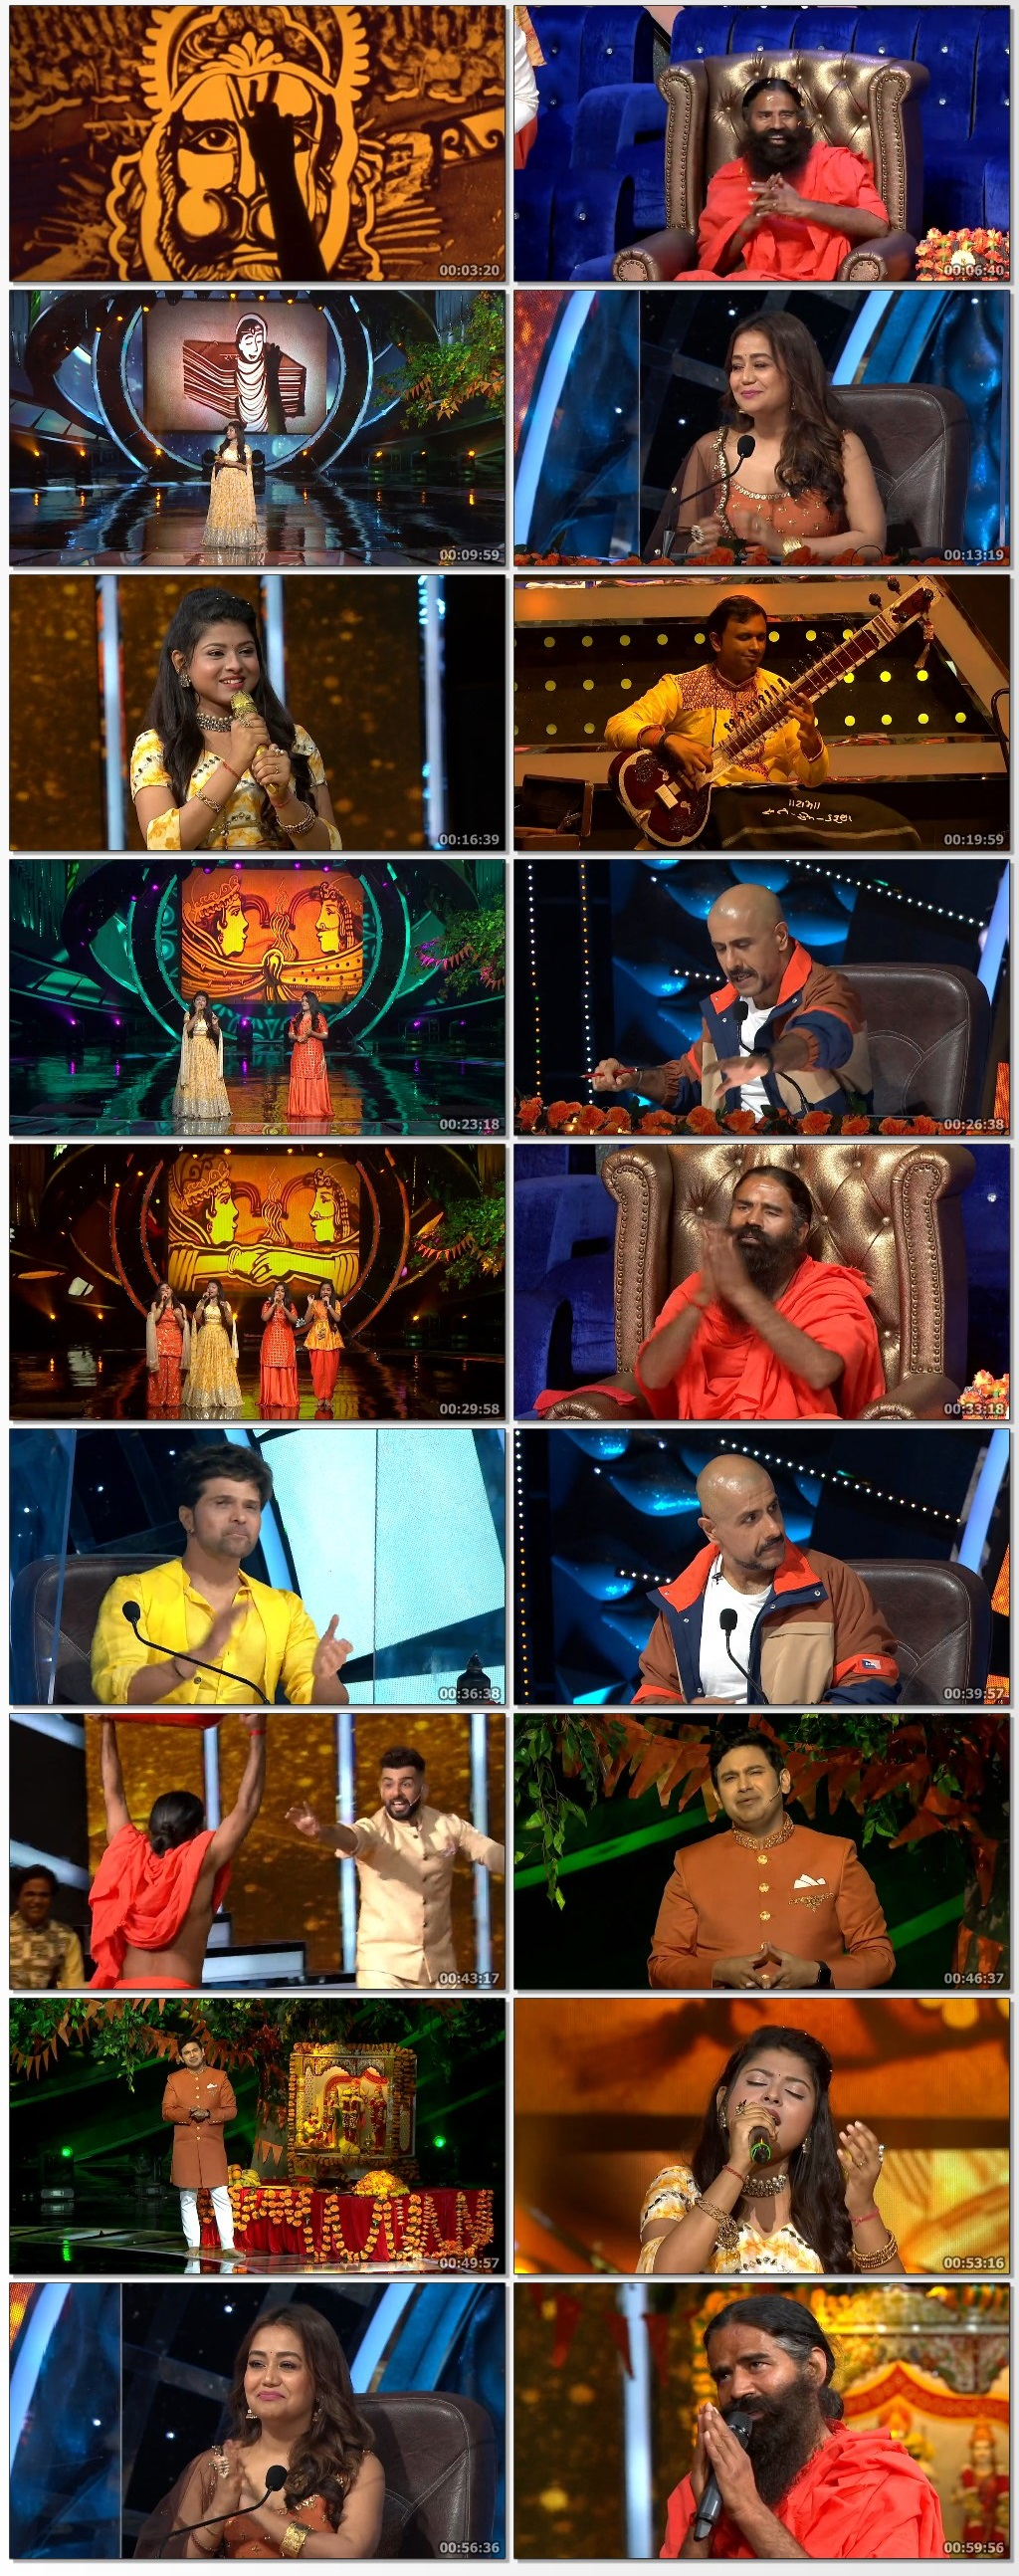 Indian-Idol-17th-April-2021-Full-Episode-535-MB-720p-mp4-thumbs